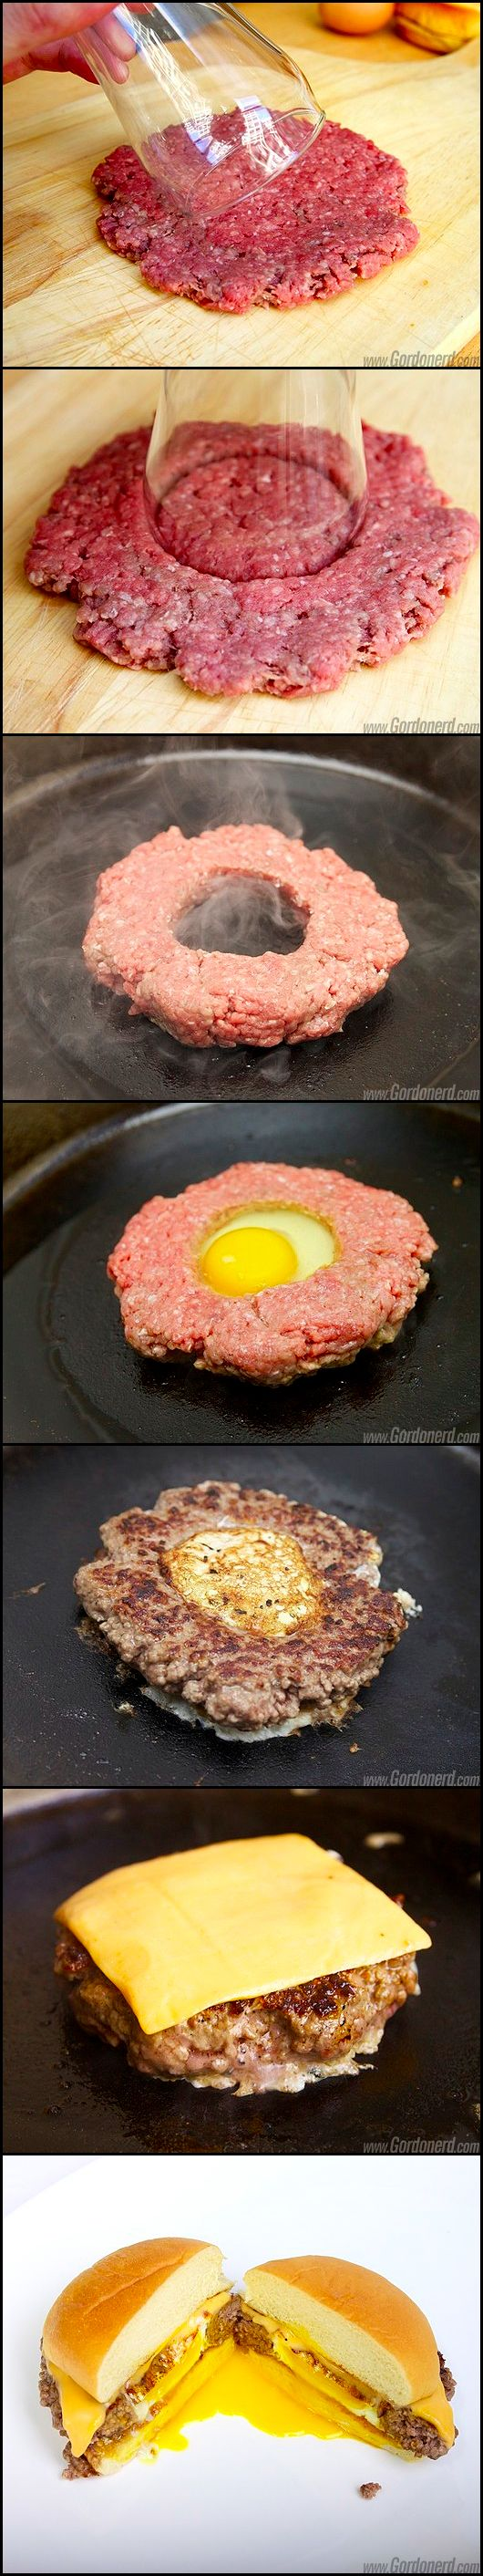 Egg in a hole hamburger.